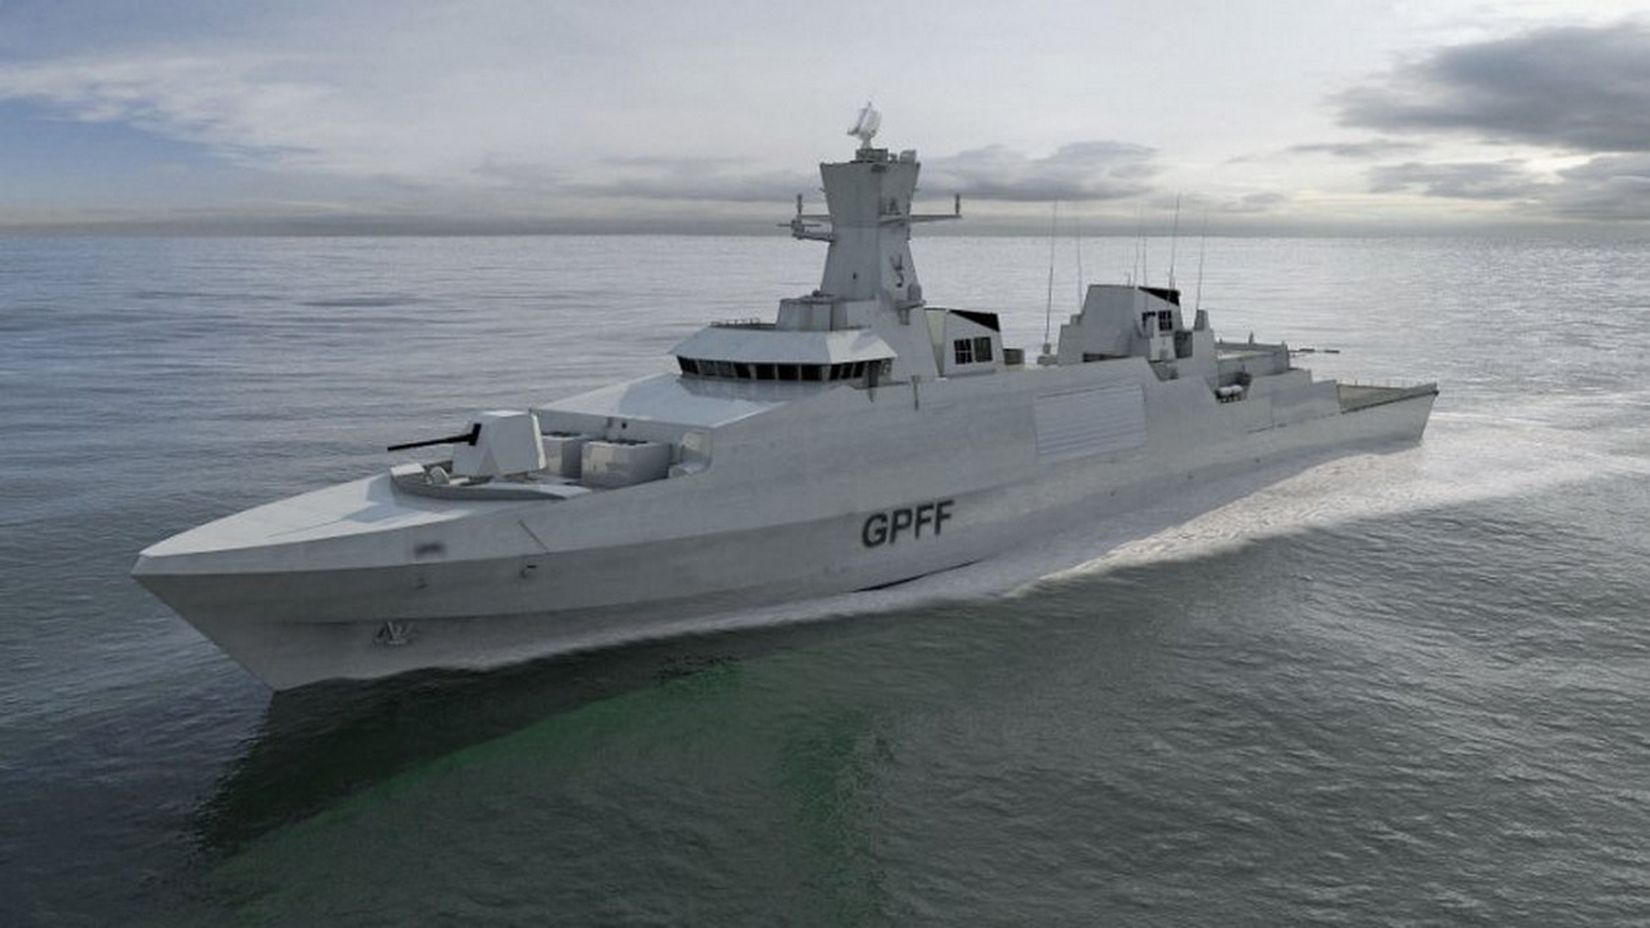 One of the Type 31 frigate designs.